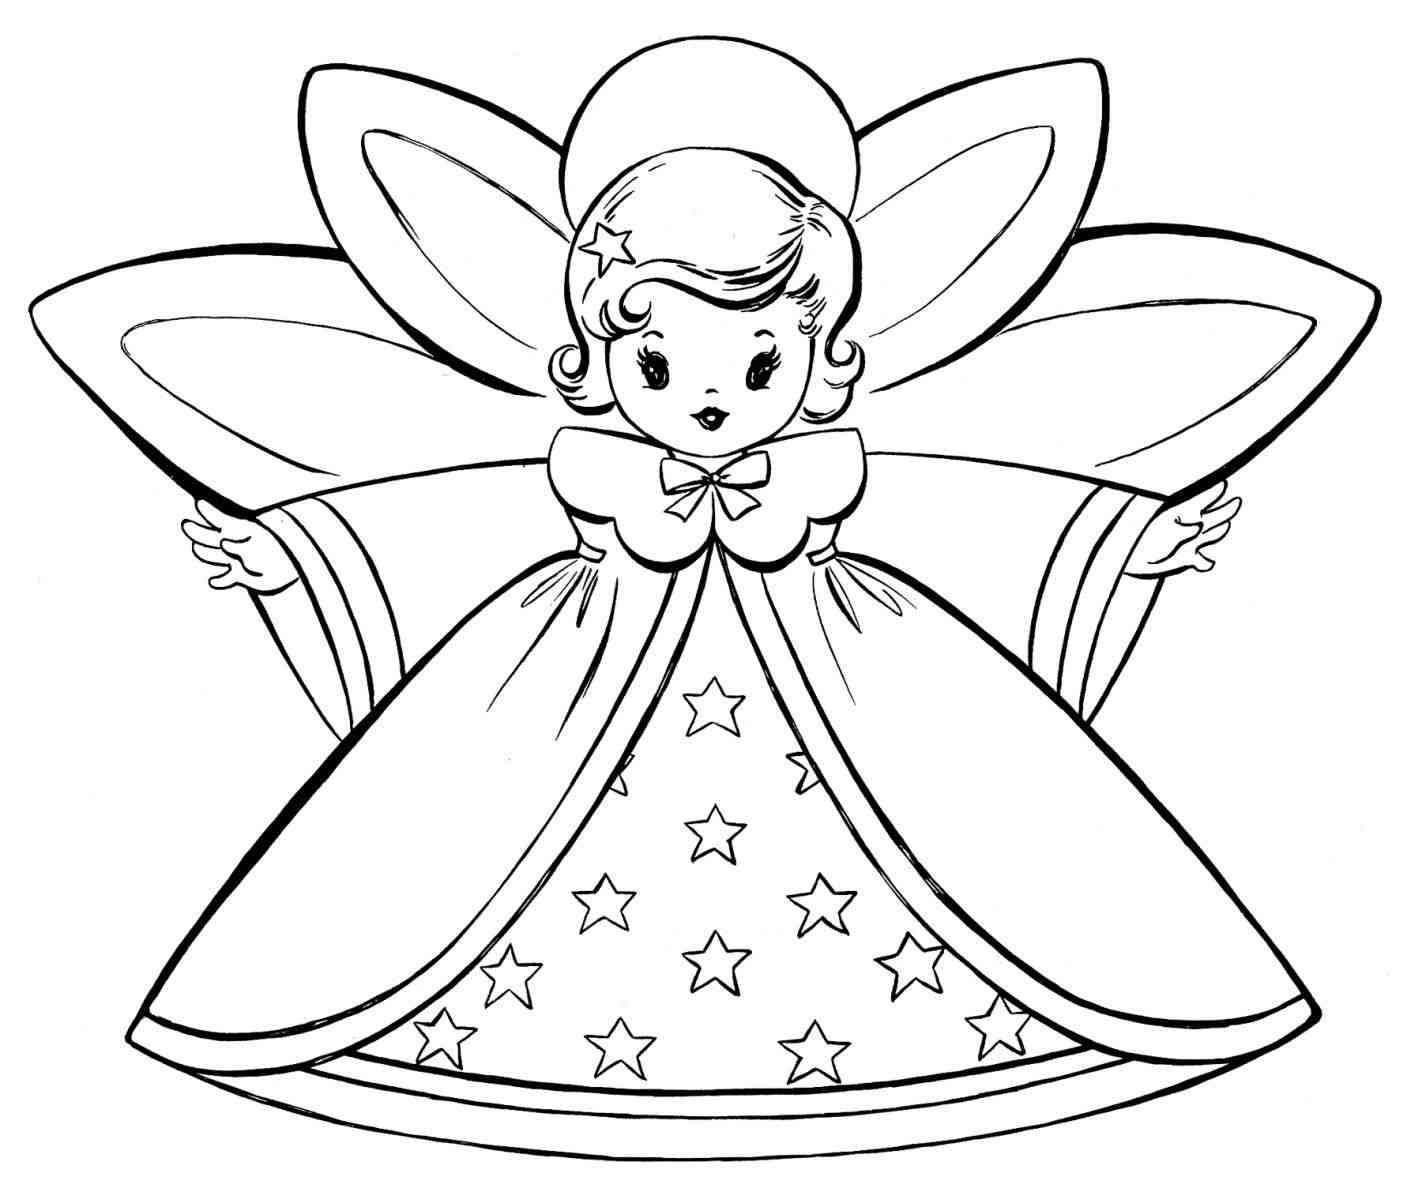 Cute Christmas Coloring Pages 2019 Christmas Colouring Pages For Babies With Ba Penguin Coloring